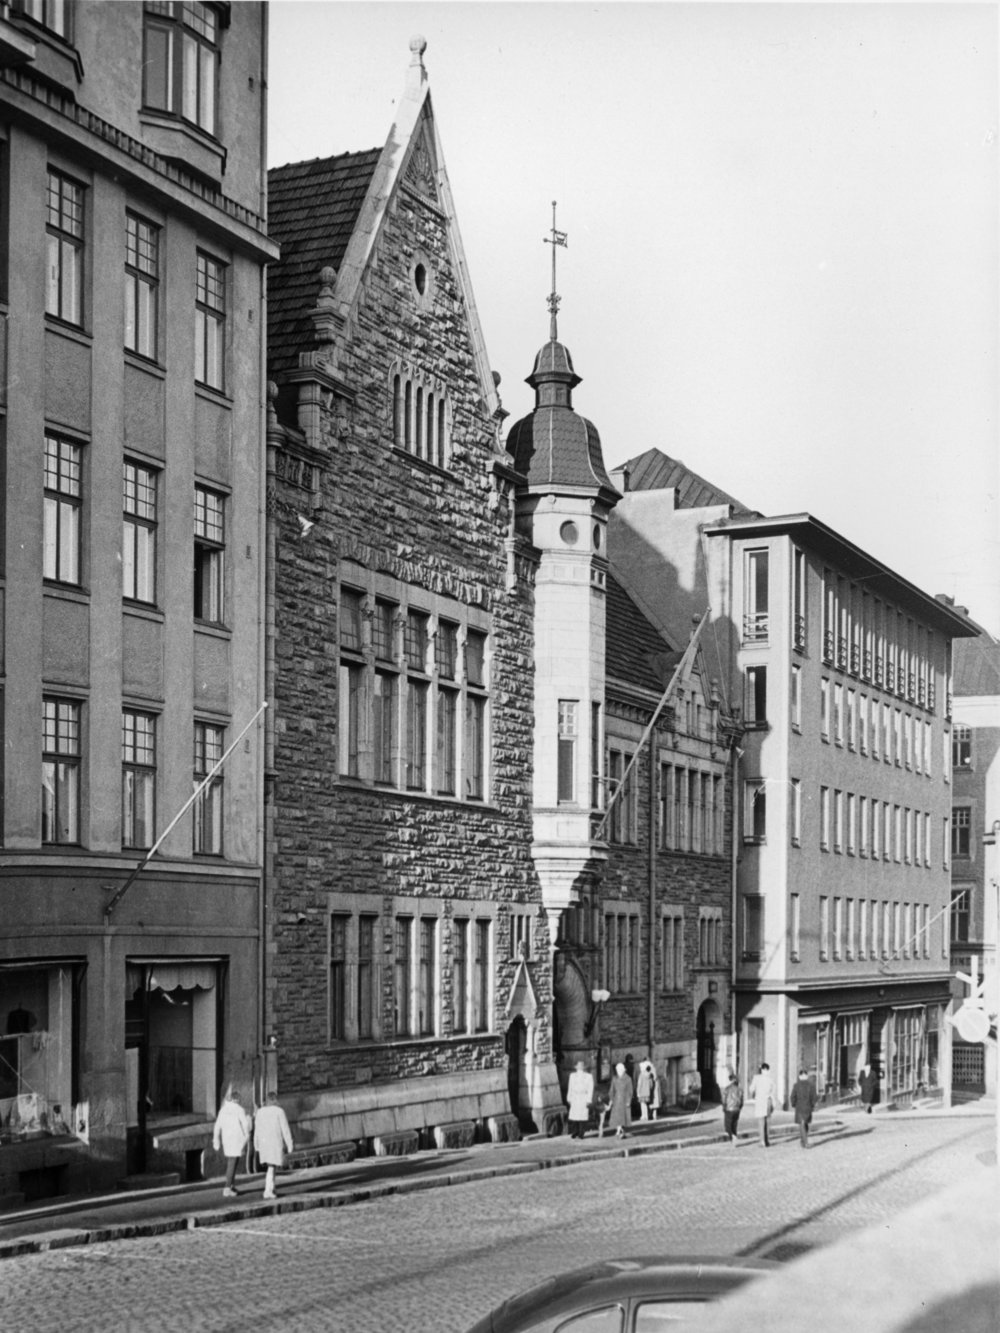 The oldest student union house in Finland, the house of Nylands Nation on Kasarmikatu, was completed in 1901. Nylands Nation, founded in 1643, is among the oldest student nations in Finland itself.  Photo: Helsinki City Museum, Constantin Grünberg.